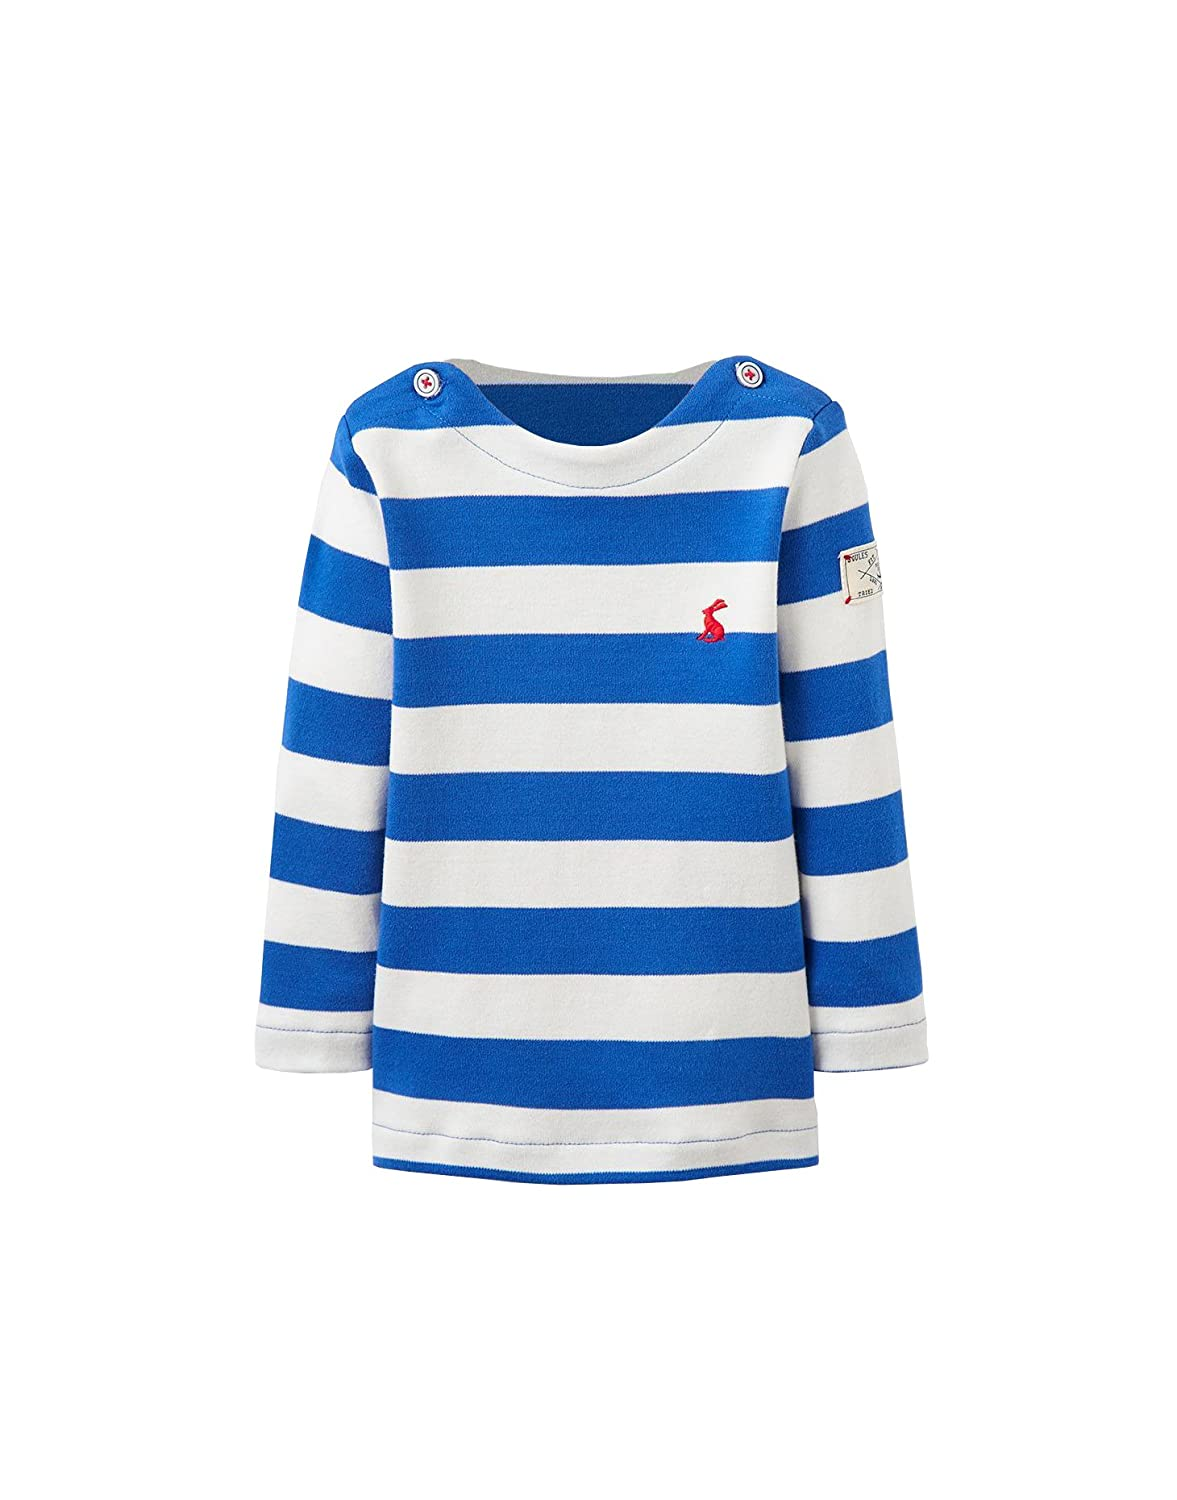 Joules Baby Boys Long Sleeved Harbour Striped Top - Ocean Blue Stripe